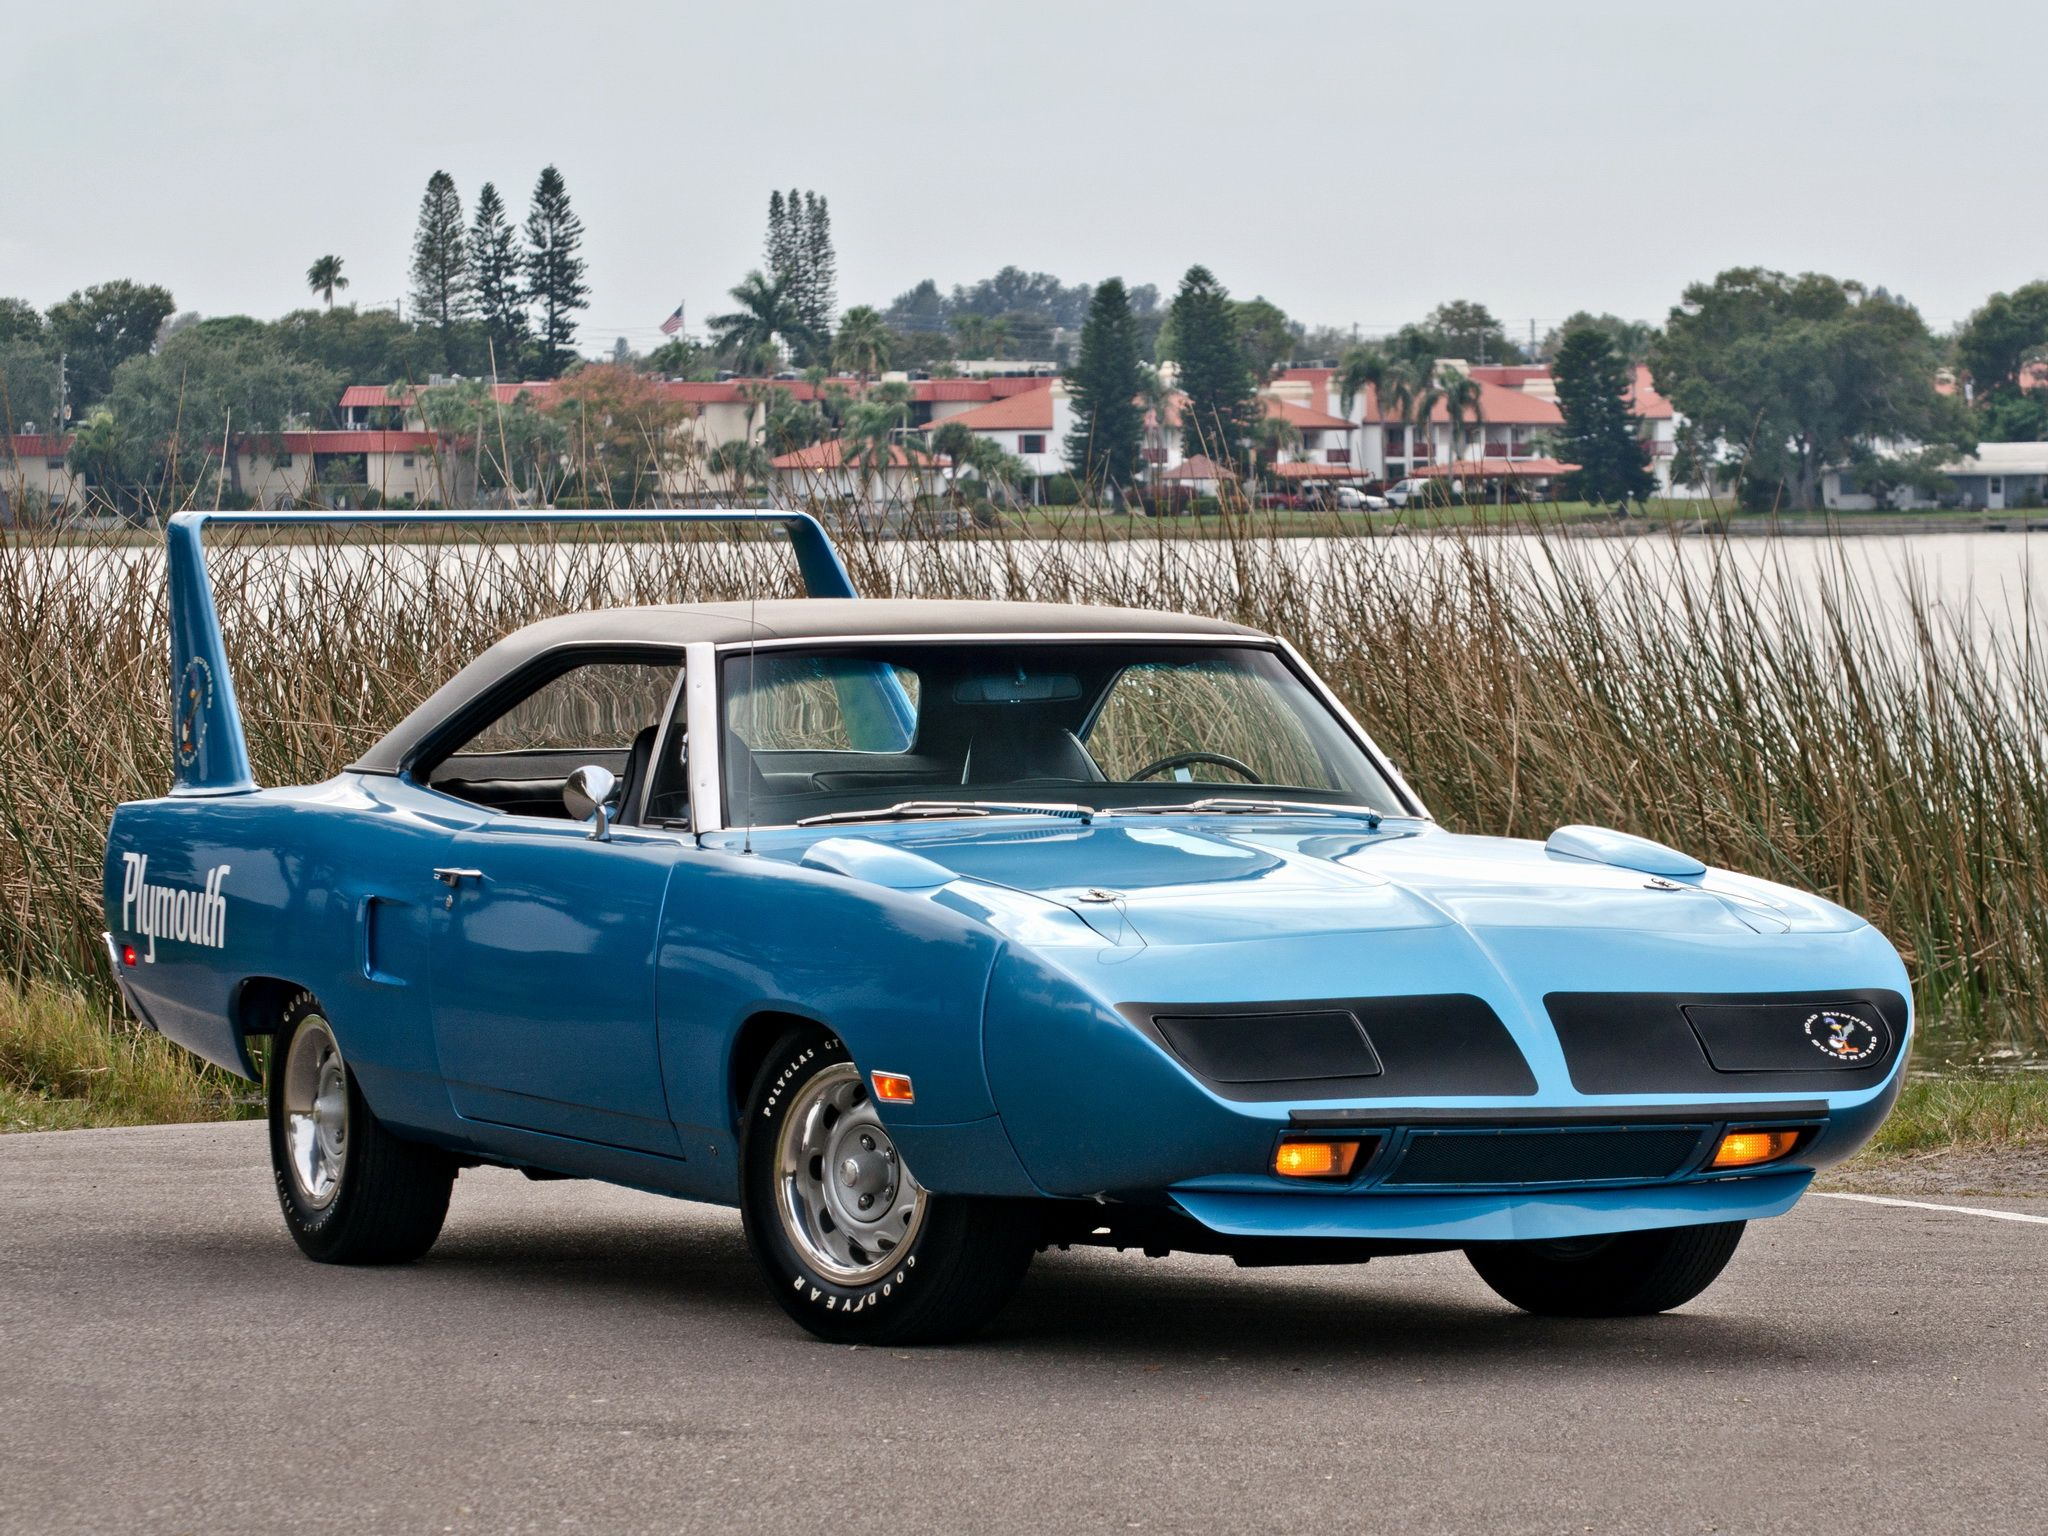 c543cba36f9b377f0ffc48500fe0cbf3 best 25 plymouth daytona ideas on pinterest plymouth superbird 1969 Dodge Super Bee at alyssarenee.co